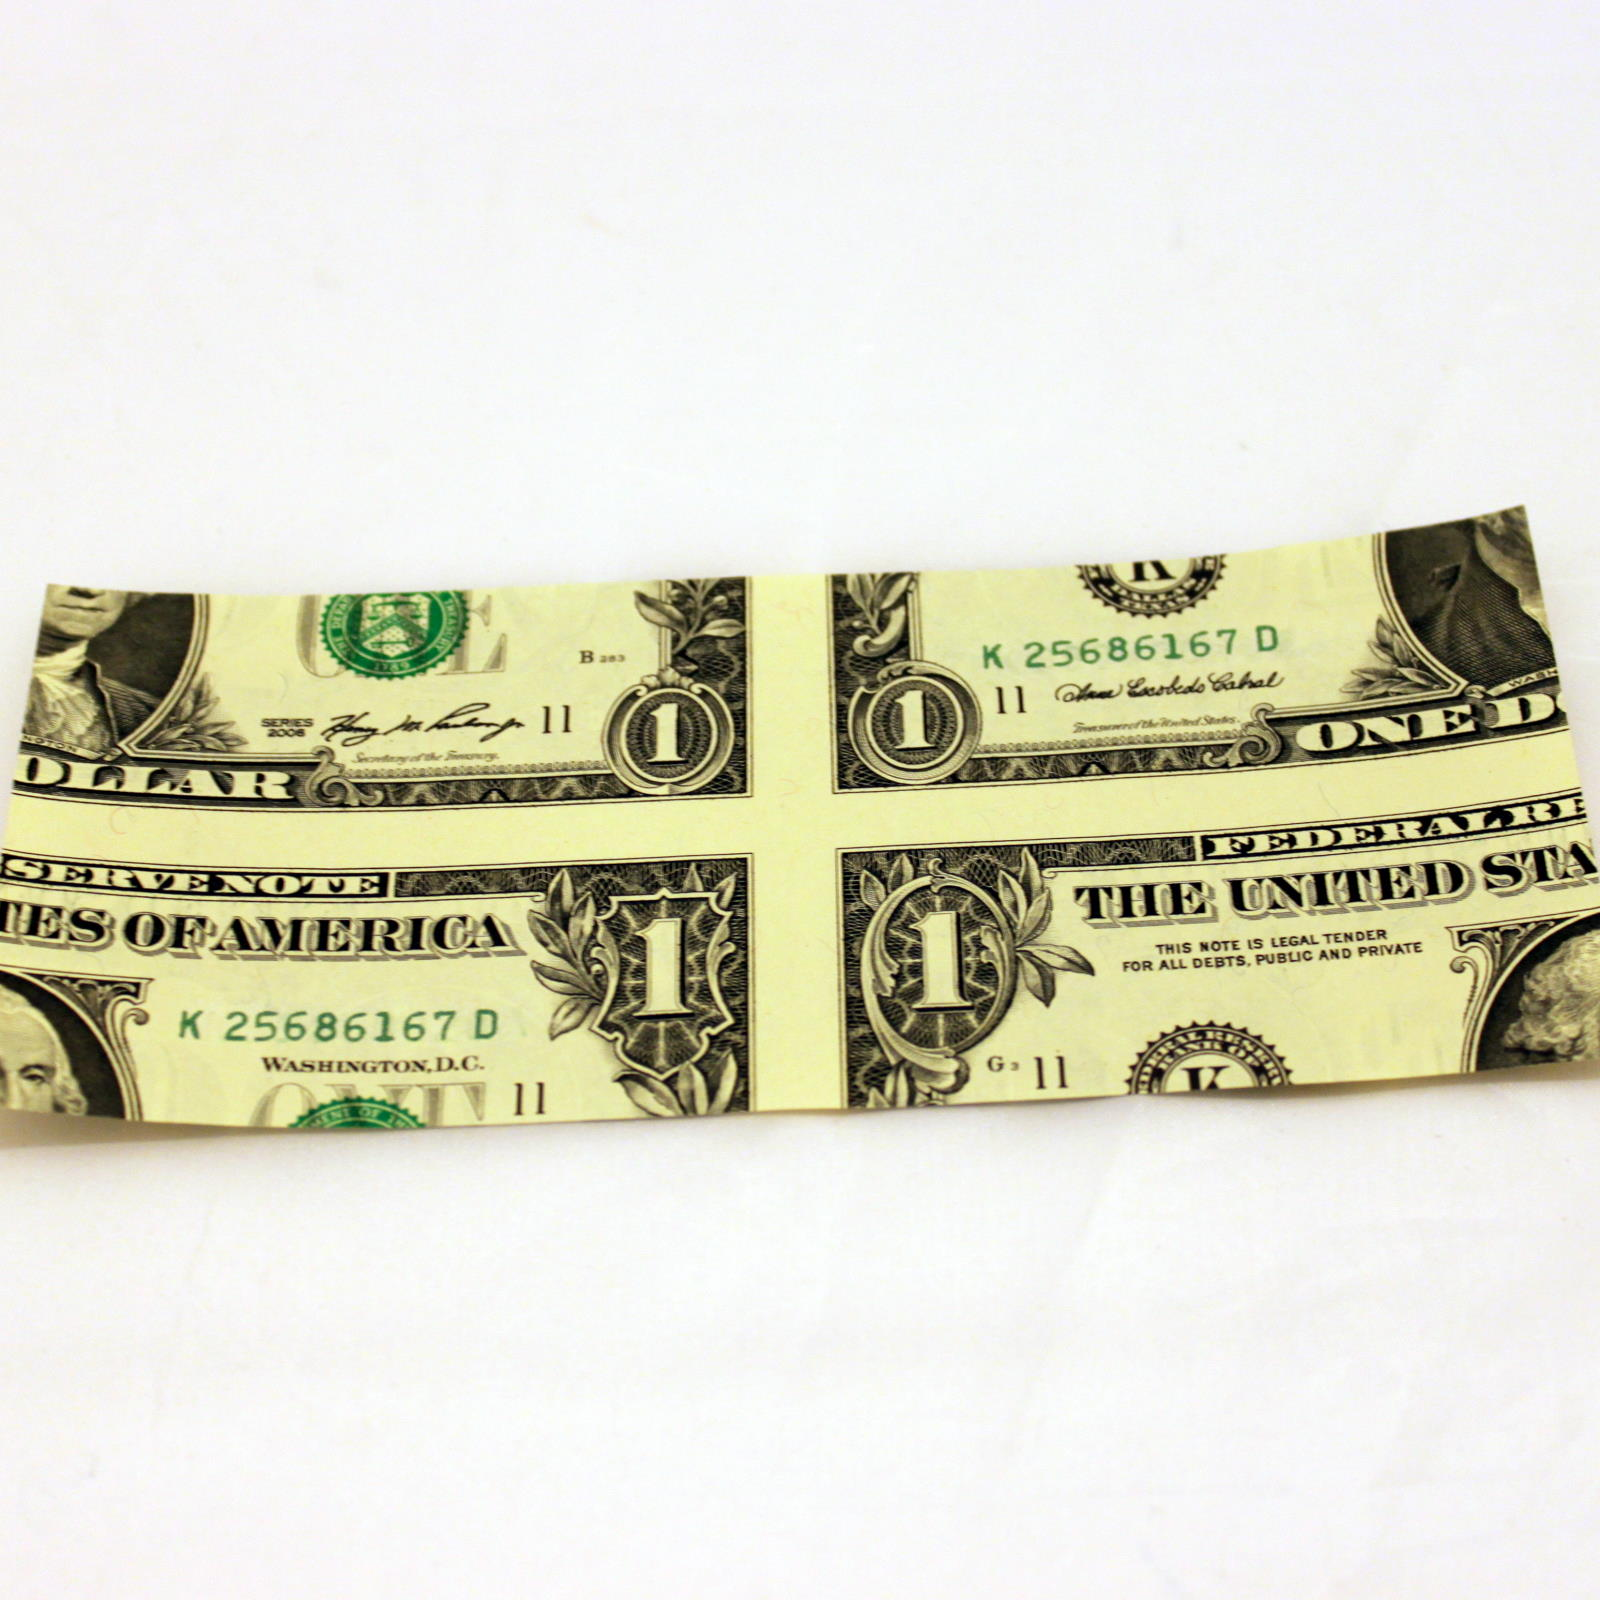 Ultimate Mis-Made Bill by Innovative Deceptions